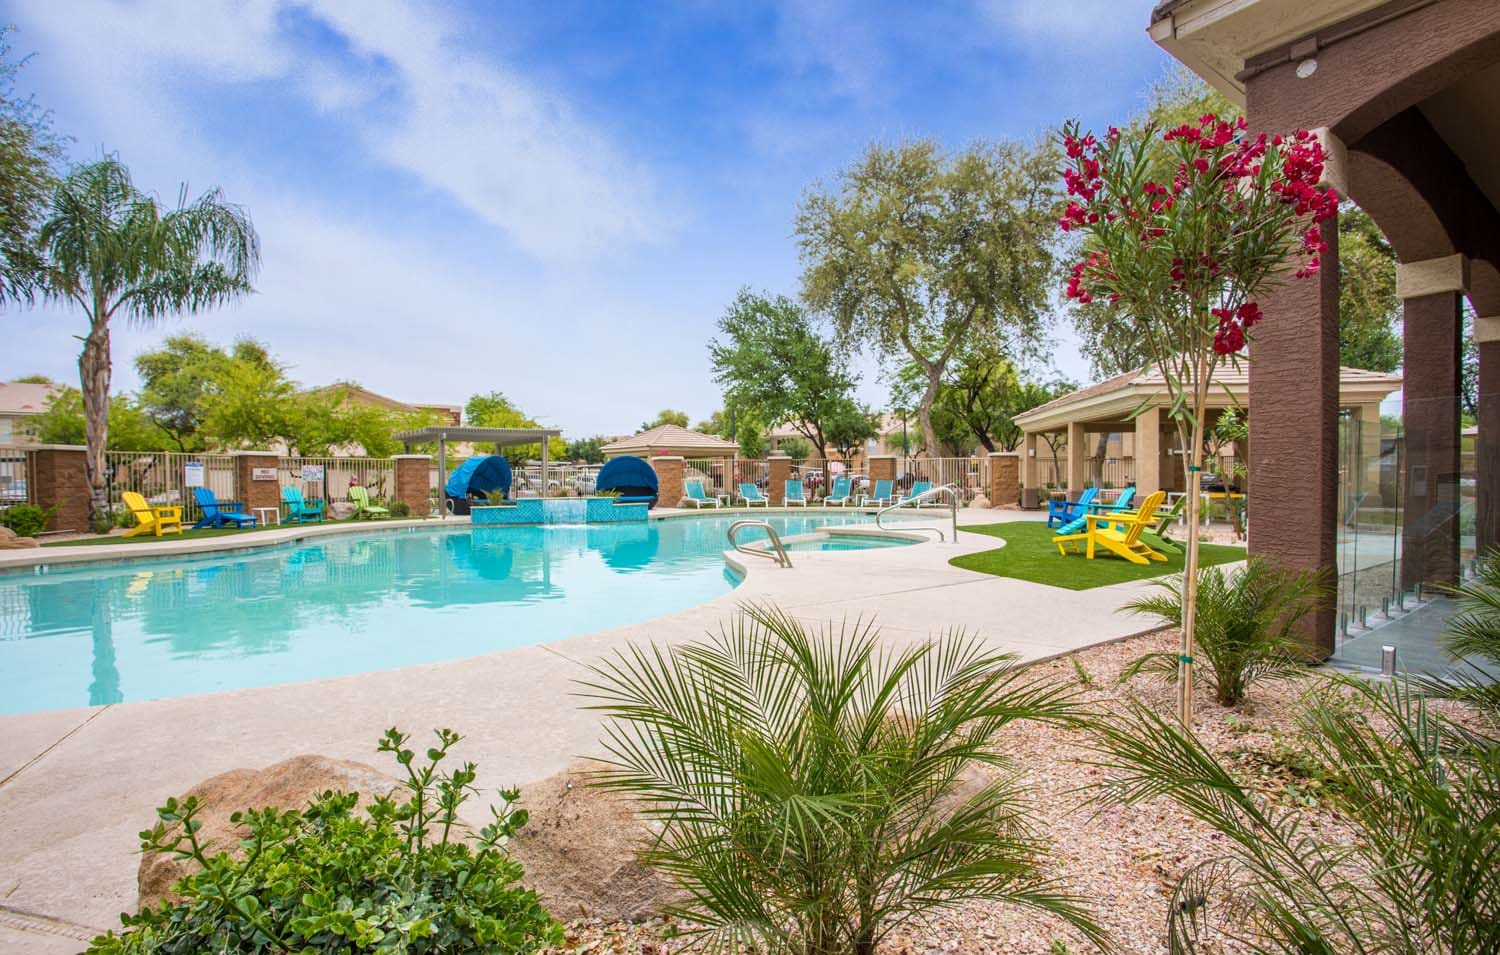 Pool With Sunning Deck at Biscayne Bay, Chandler